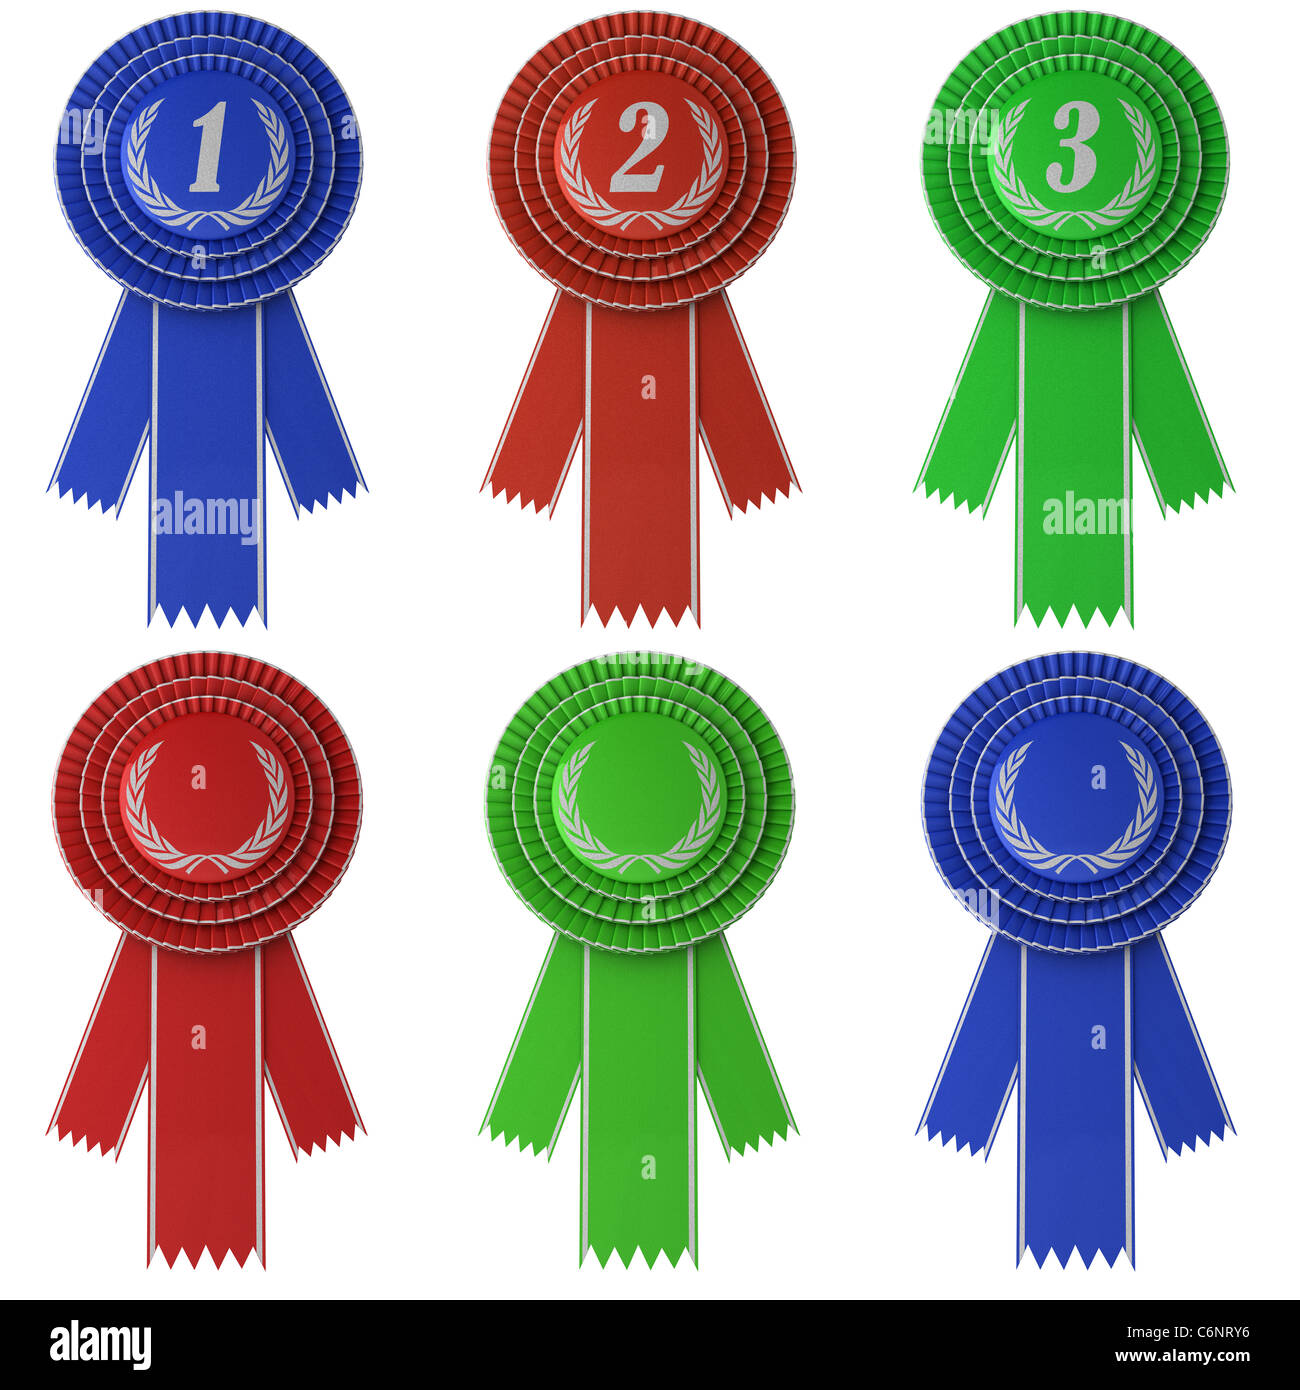 Set of six differently colored award ribbons - Stock Image